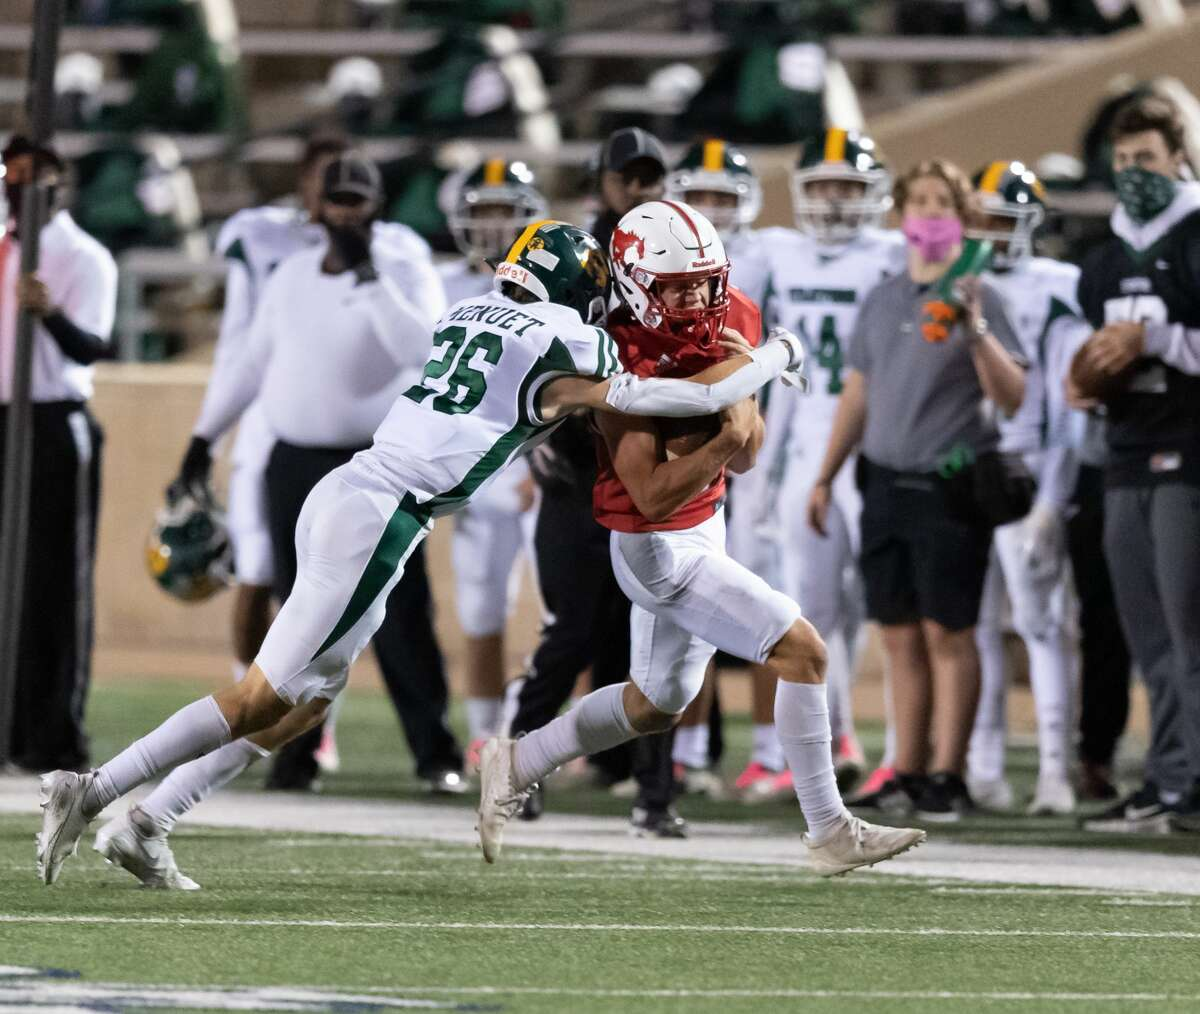 Christian Braddock (6) of the Memorial Mustangs is brought down in the first half by Brecken Menuet (26) of the Stratford Spartans during a High School football game on Friday, October 30, 2020 at Tully Stadium in Houston Texas.